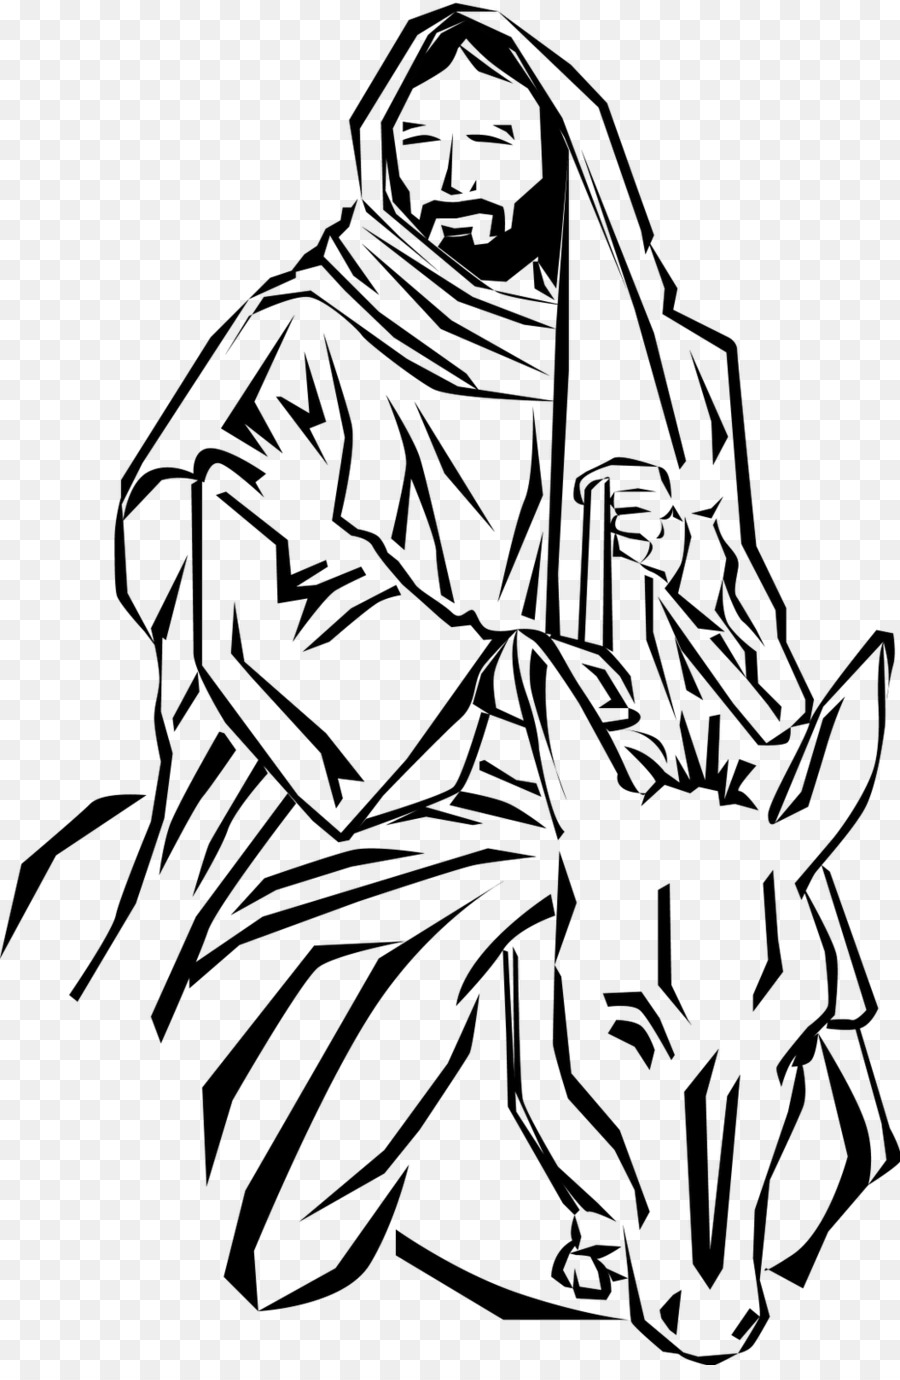 Free black and white clipart palm sunday jpg library library Palm Sunday Donkey png download - 1055*1600 - Free Transparent Palm ... jpg library library